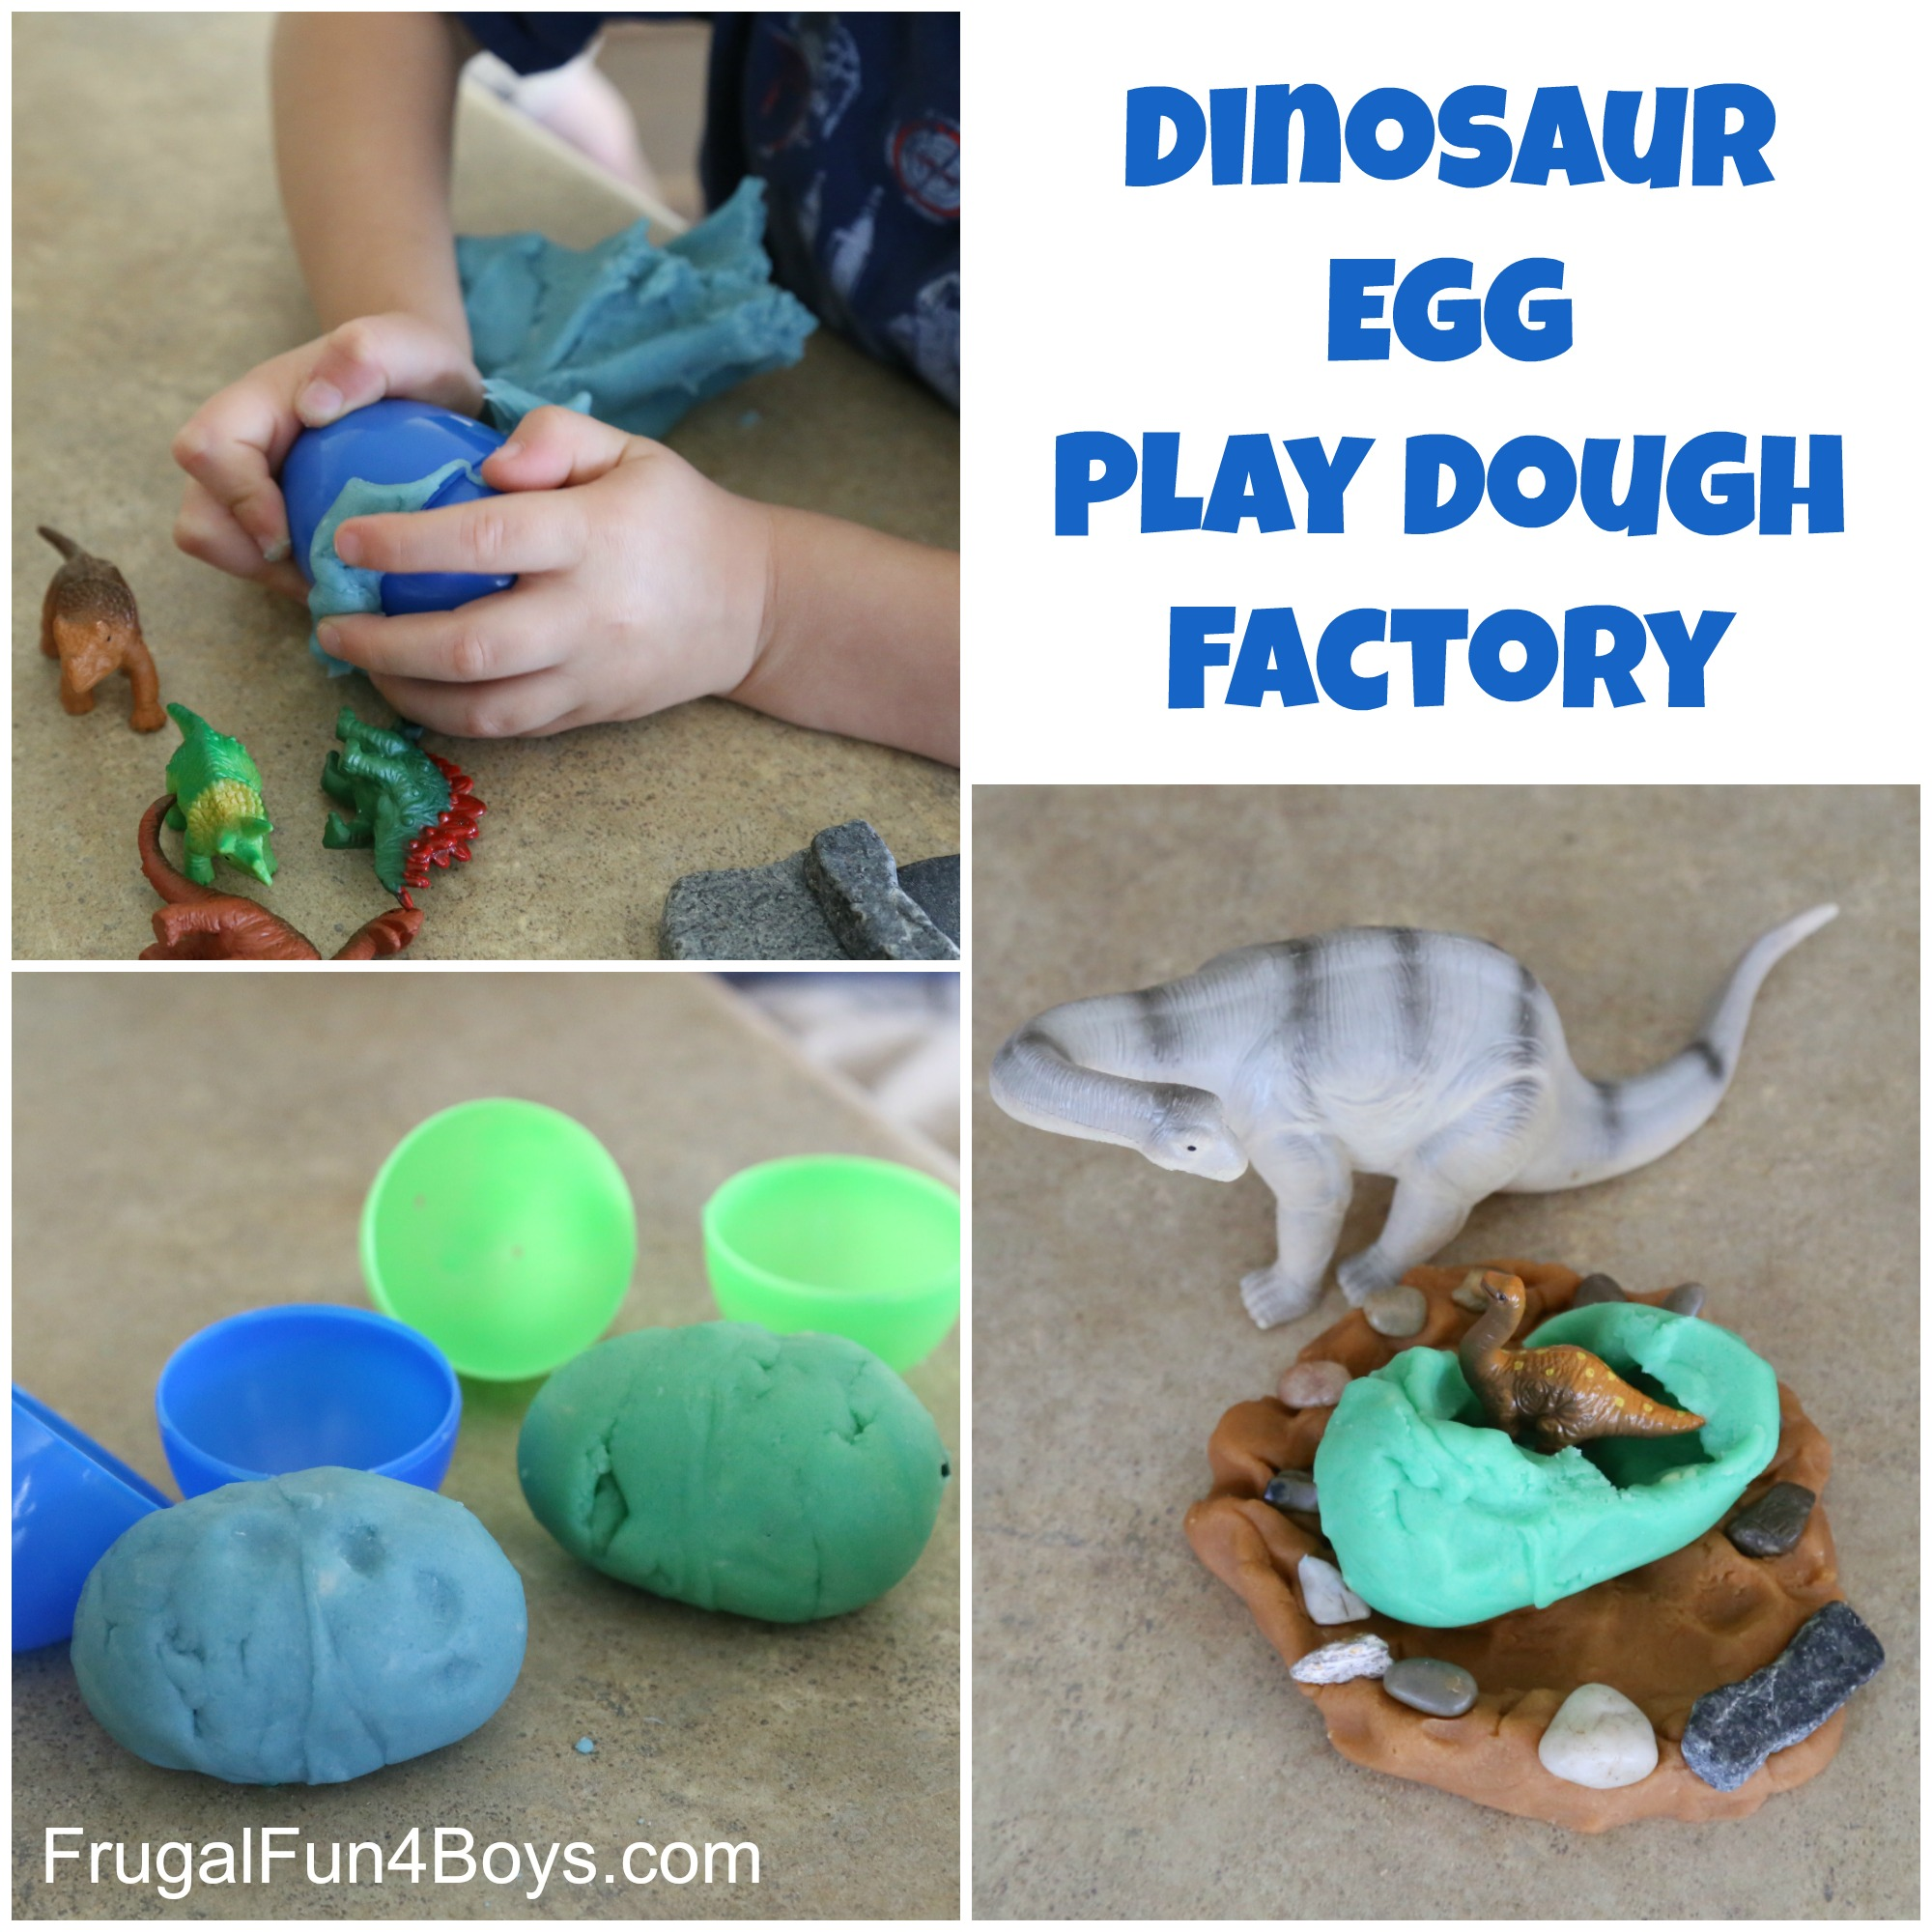 Dinosaur Egg Play Dough Factory